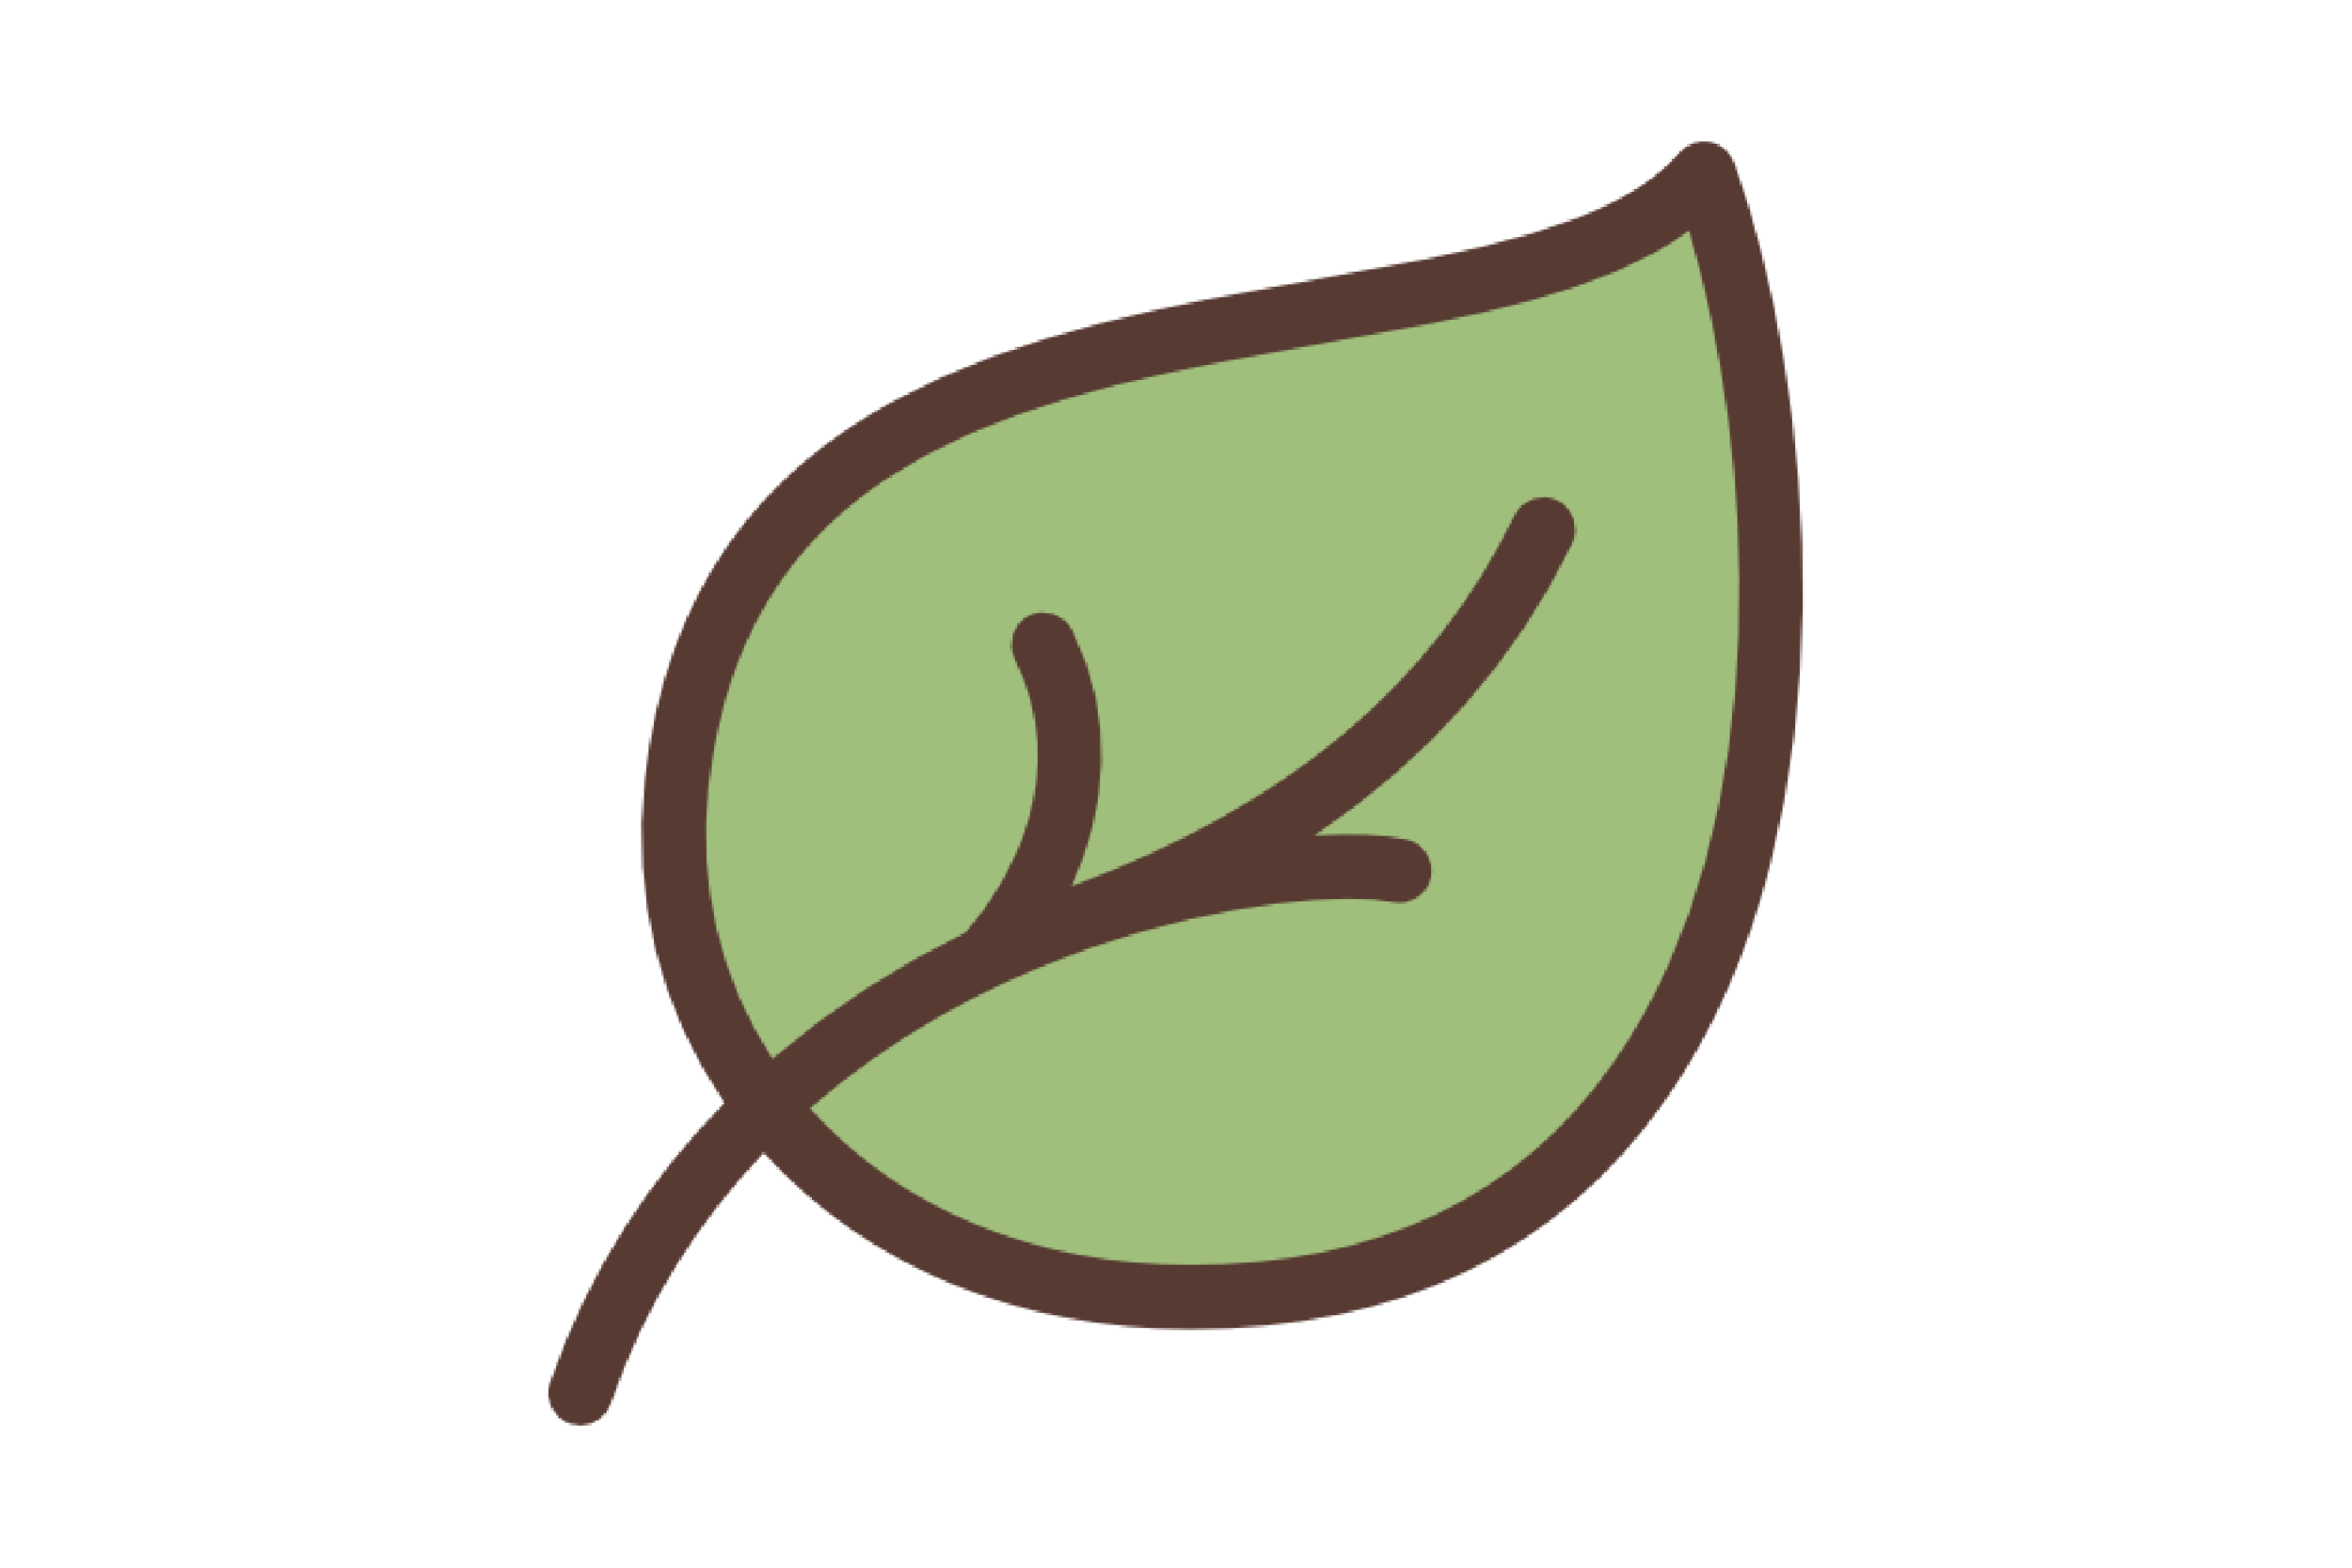 leaf-surround2.png